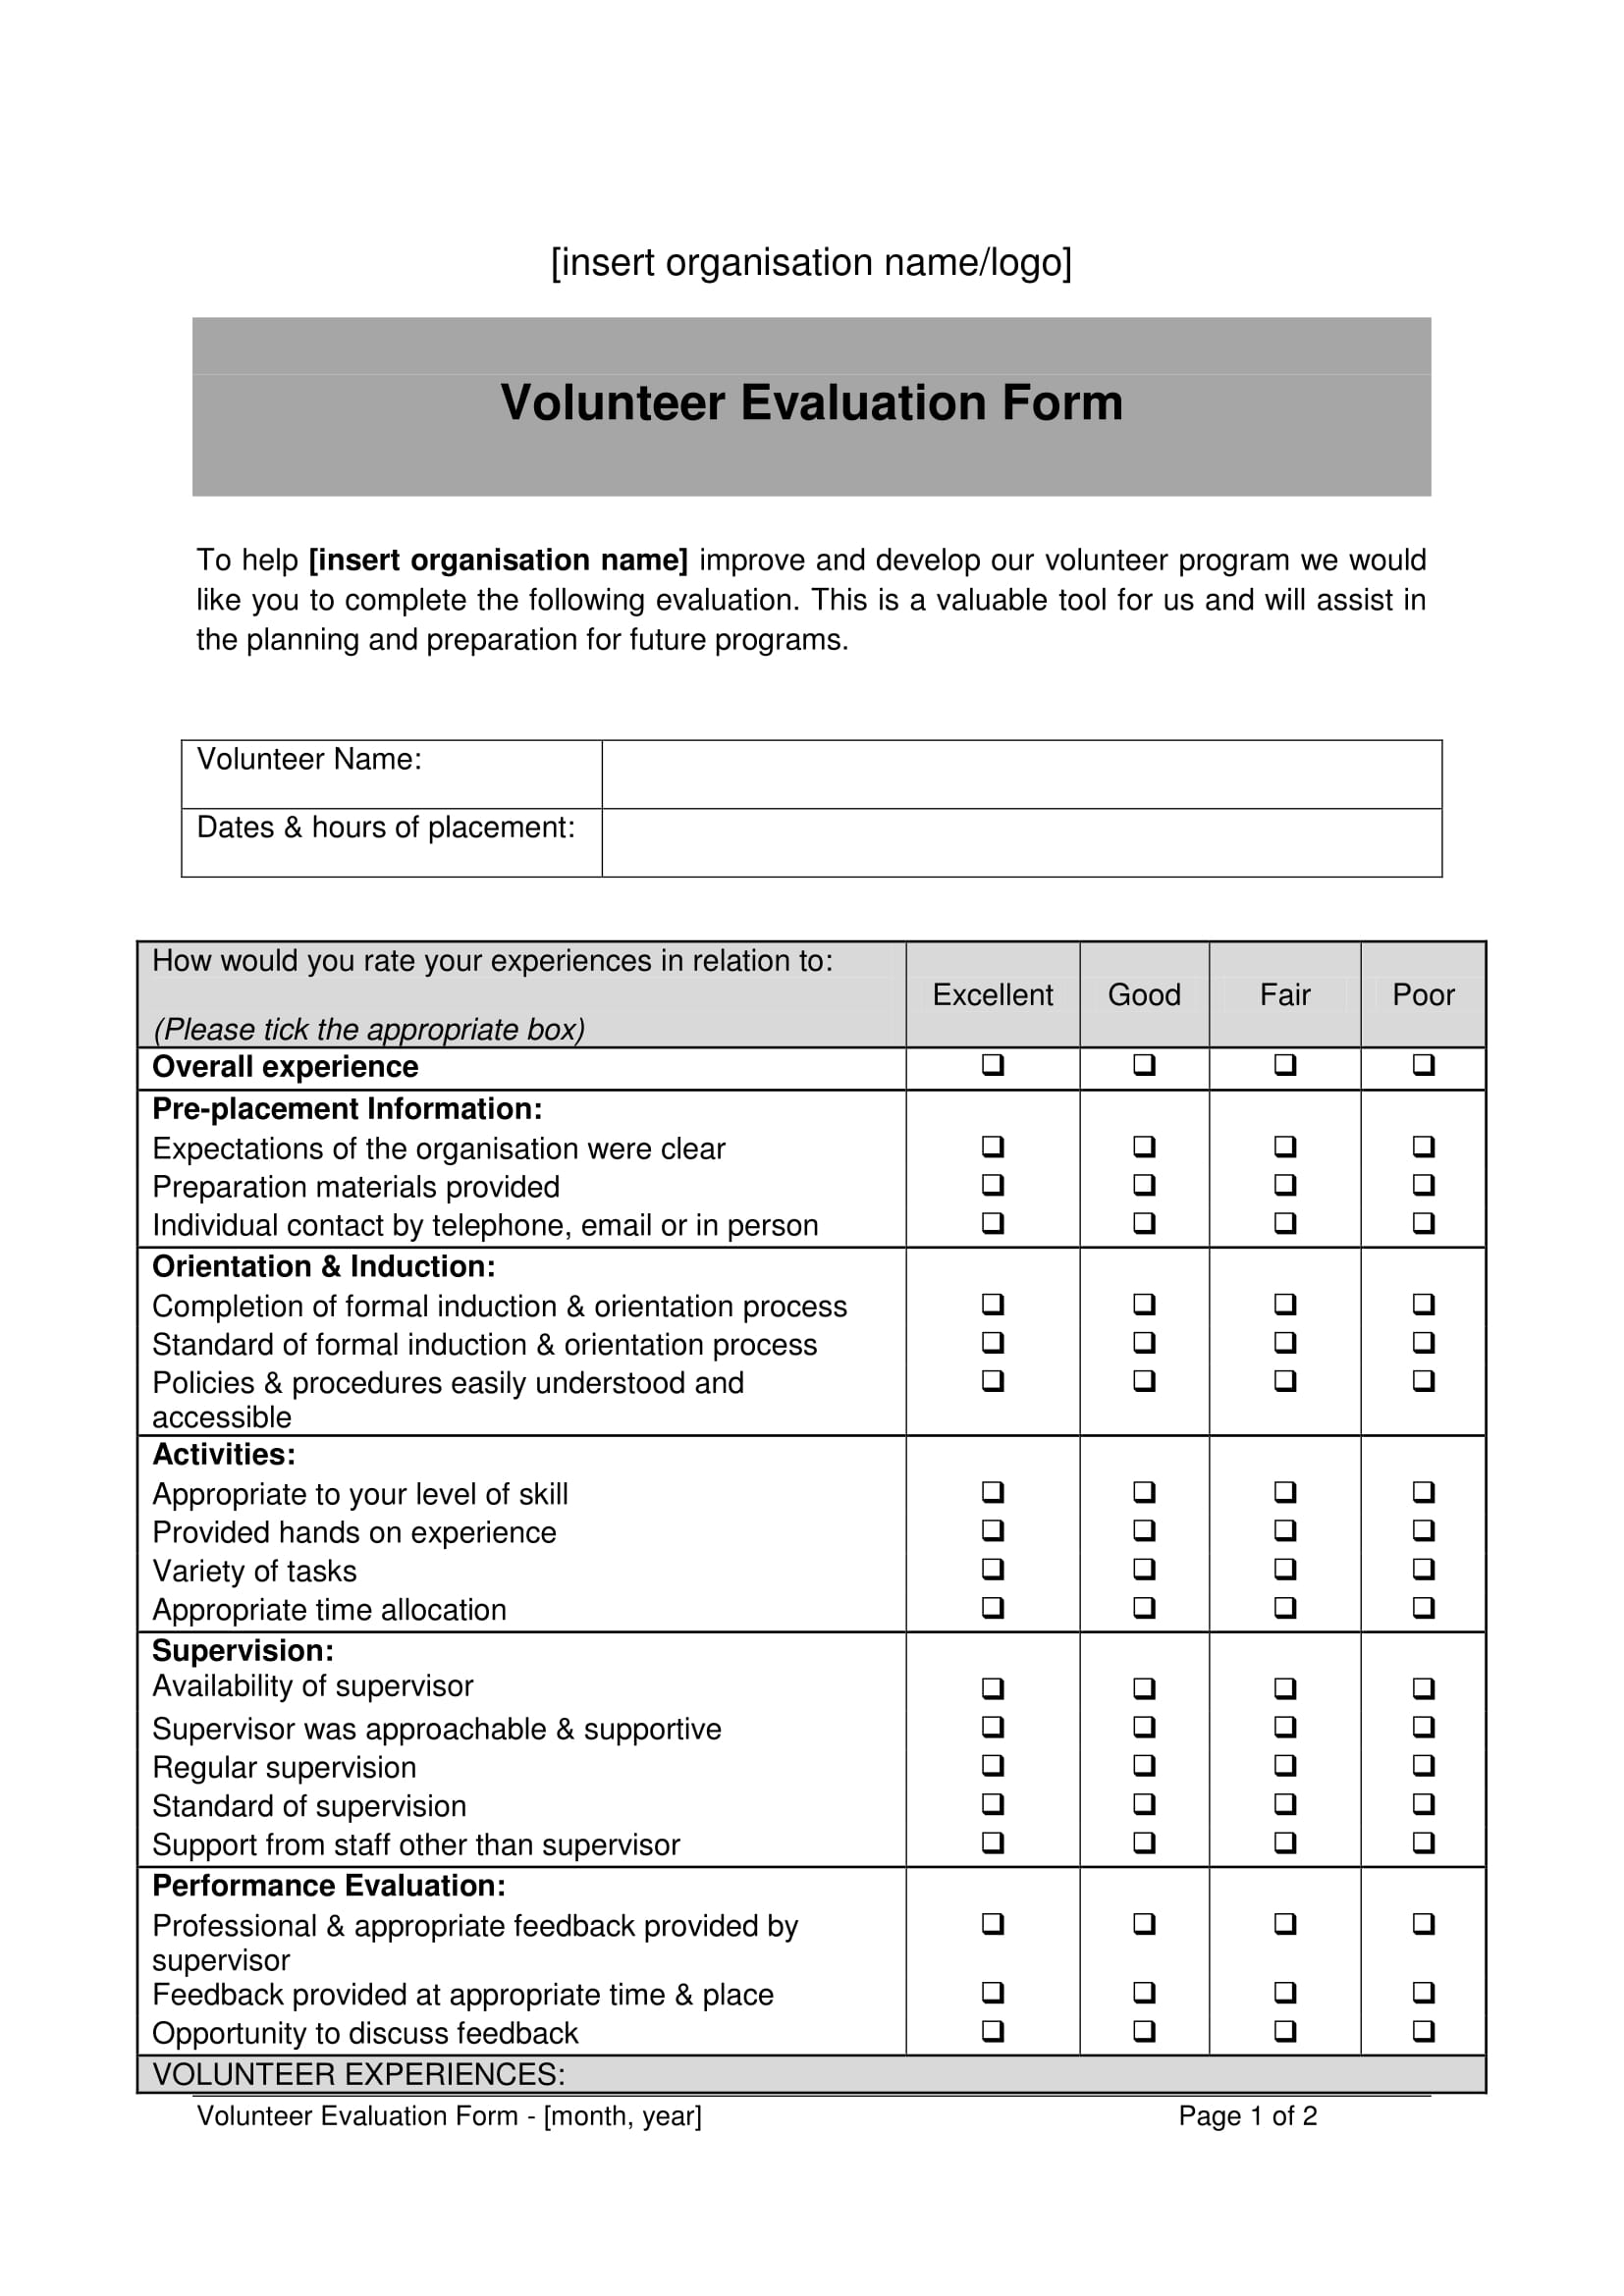 organization volunteer evaluation form 1